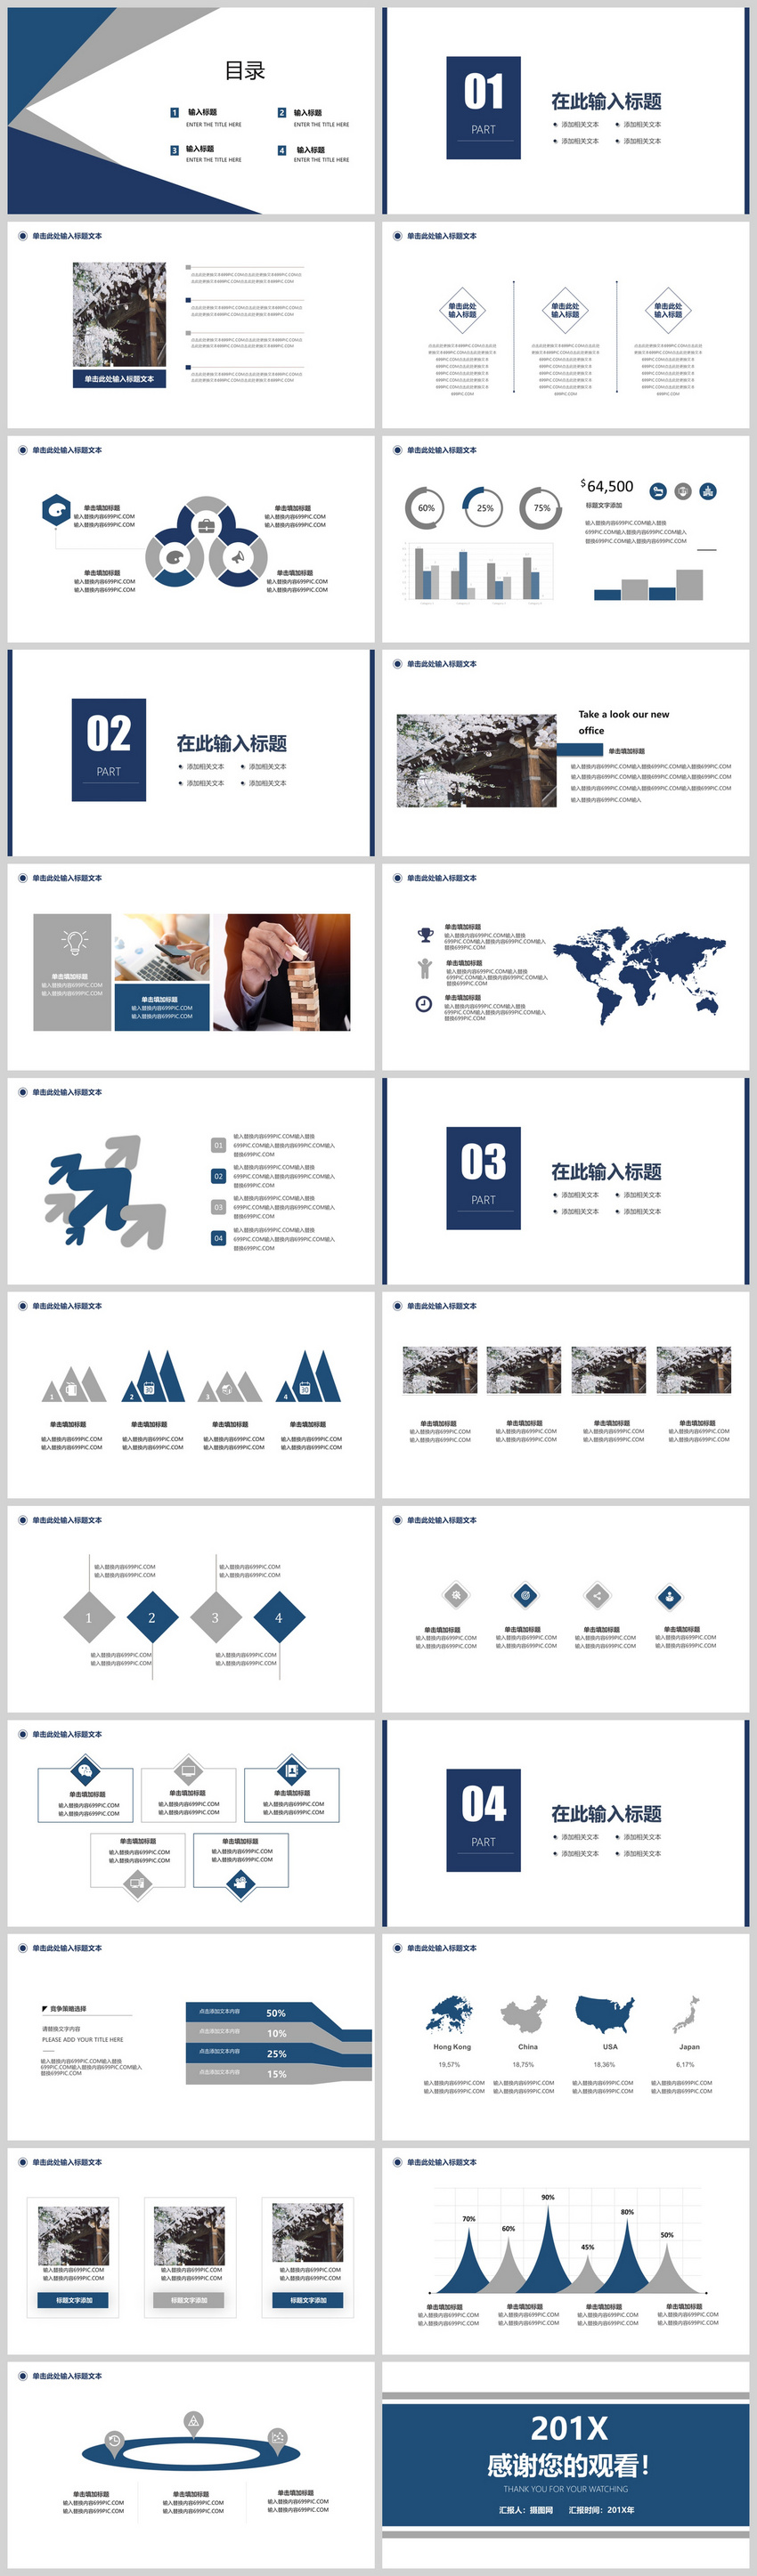 Blue classic business marketing plan ppt template powerpoint